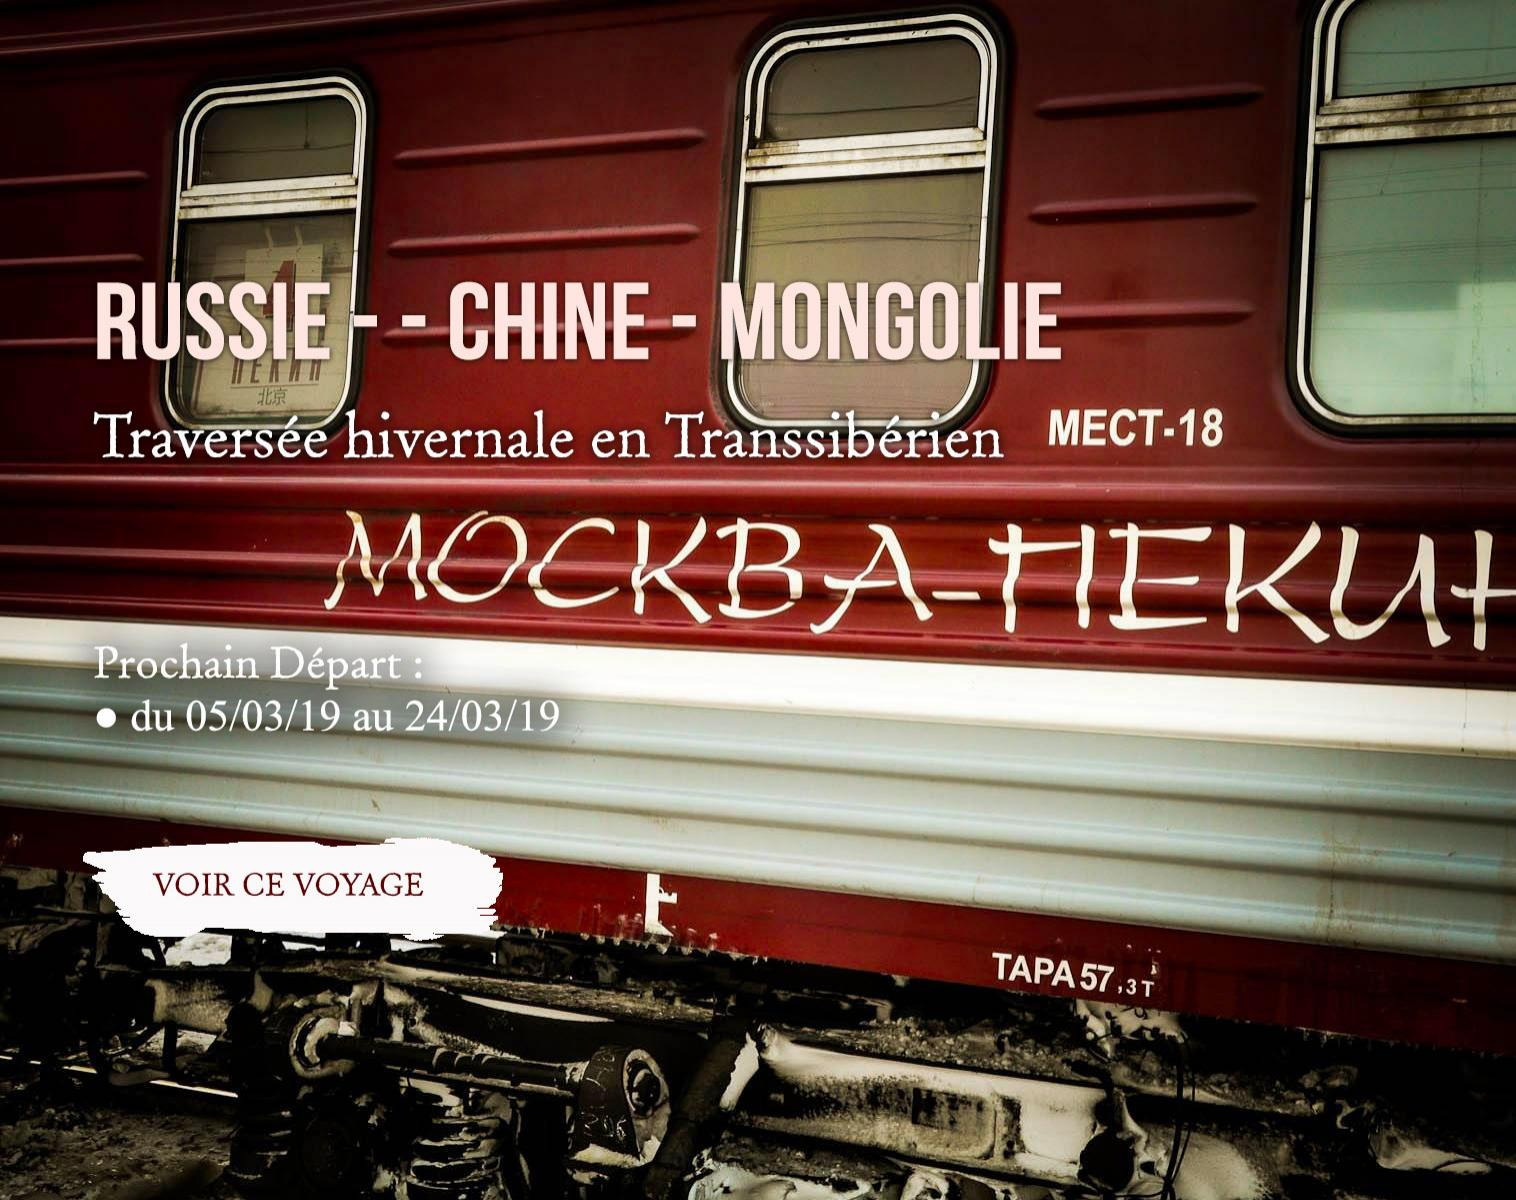 Russie - Chine - Mongolie